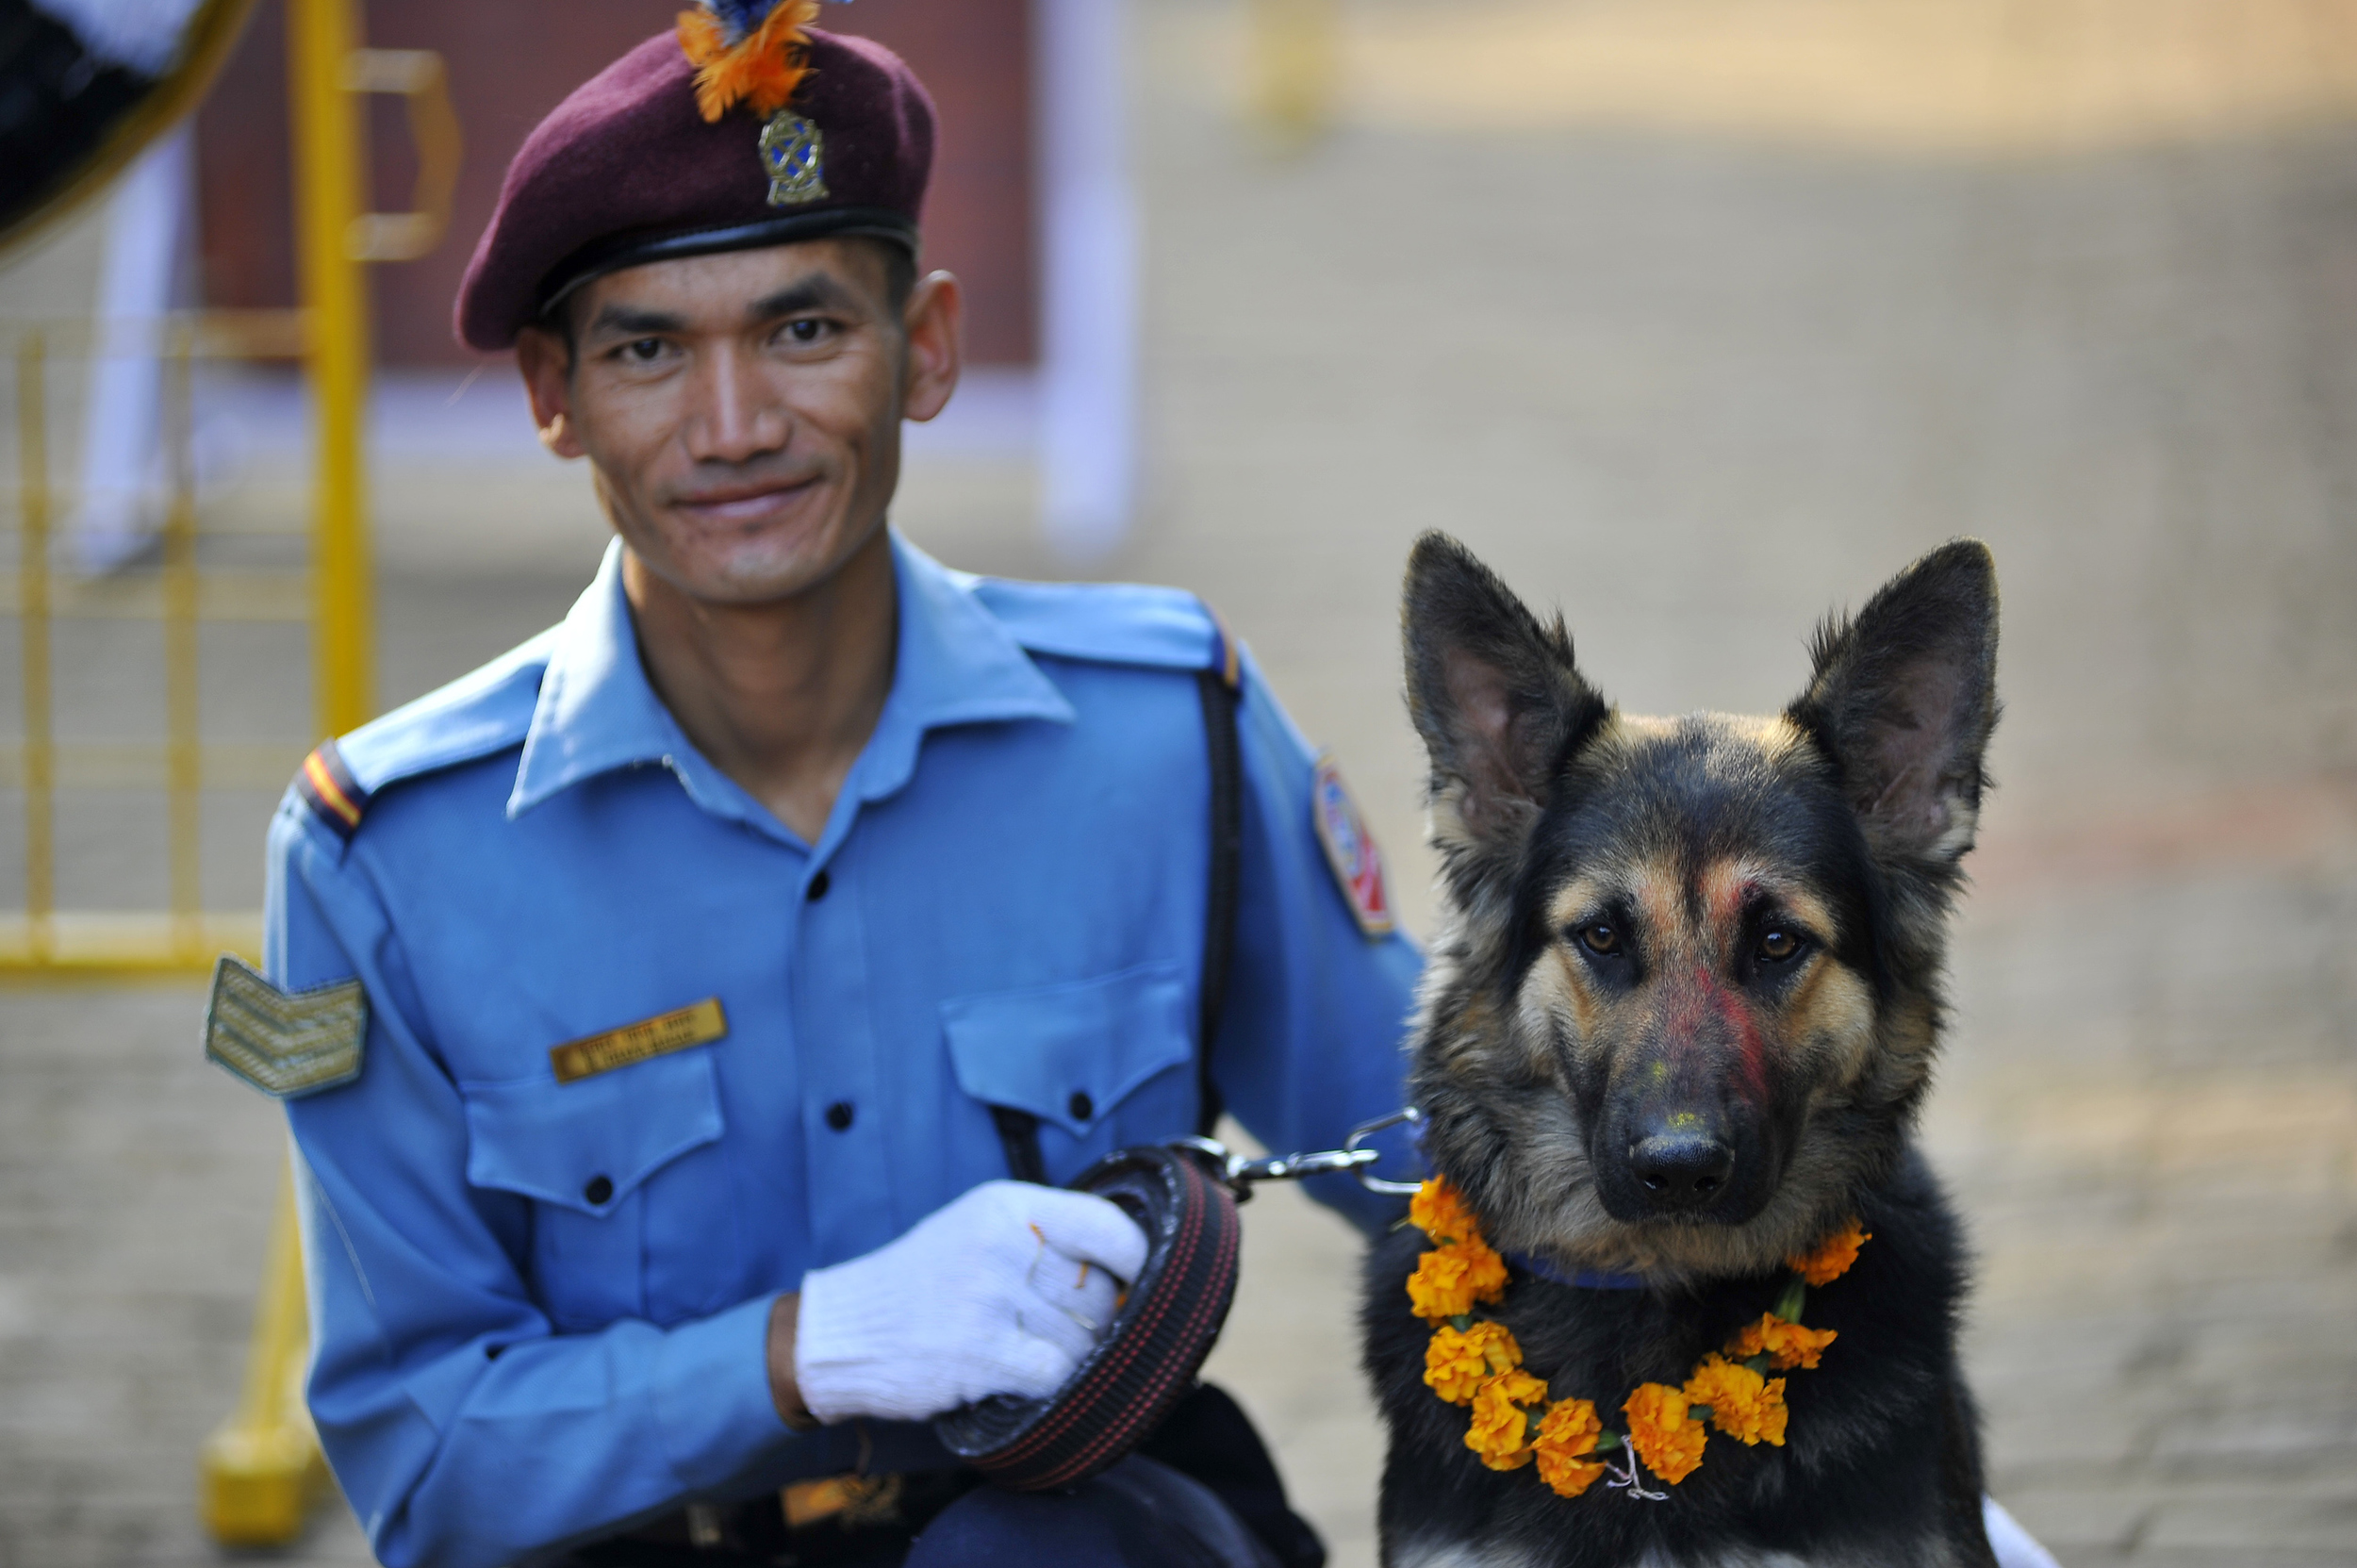 Nepal police officer along with their dogs attends Kukur